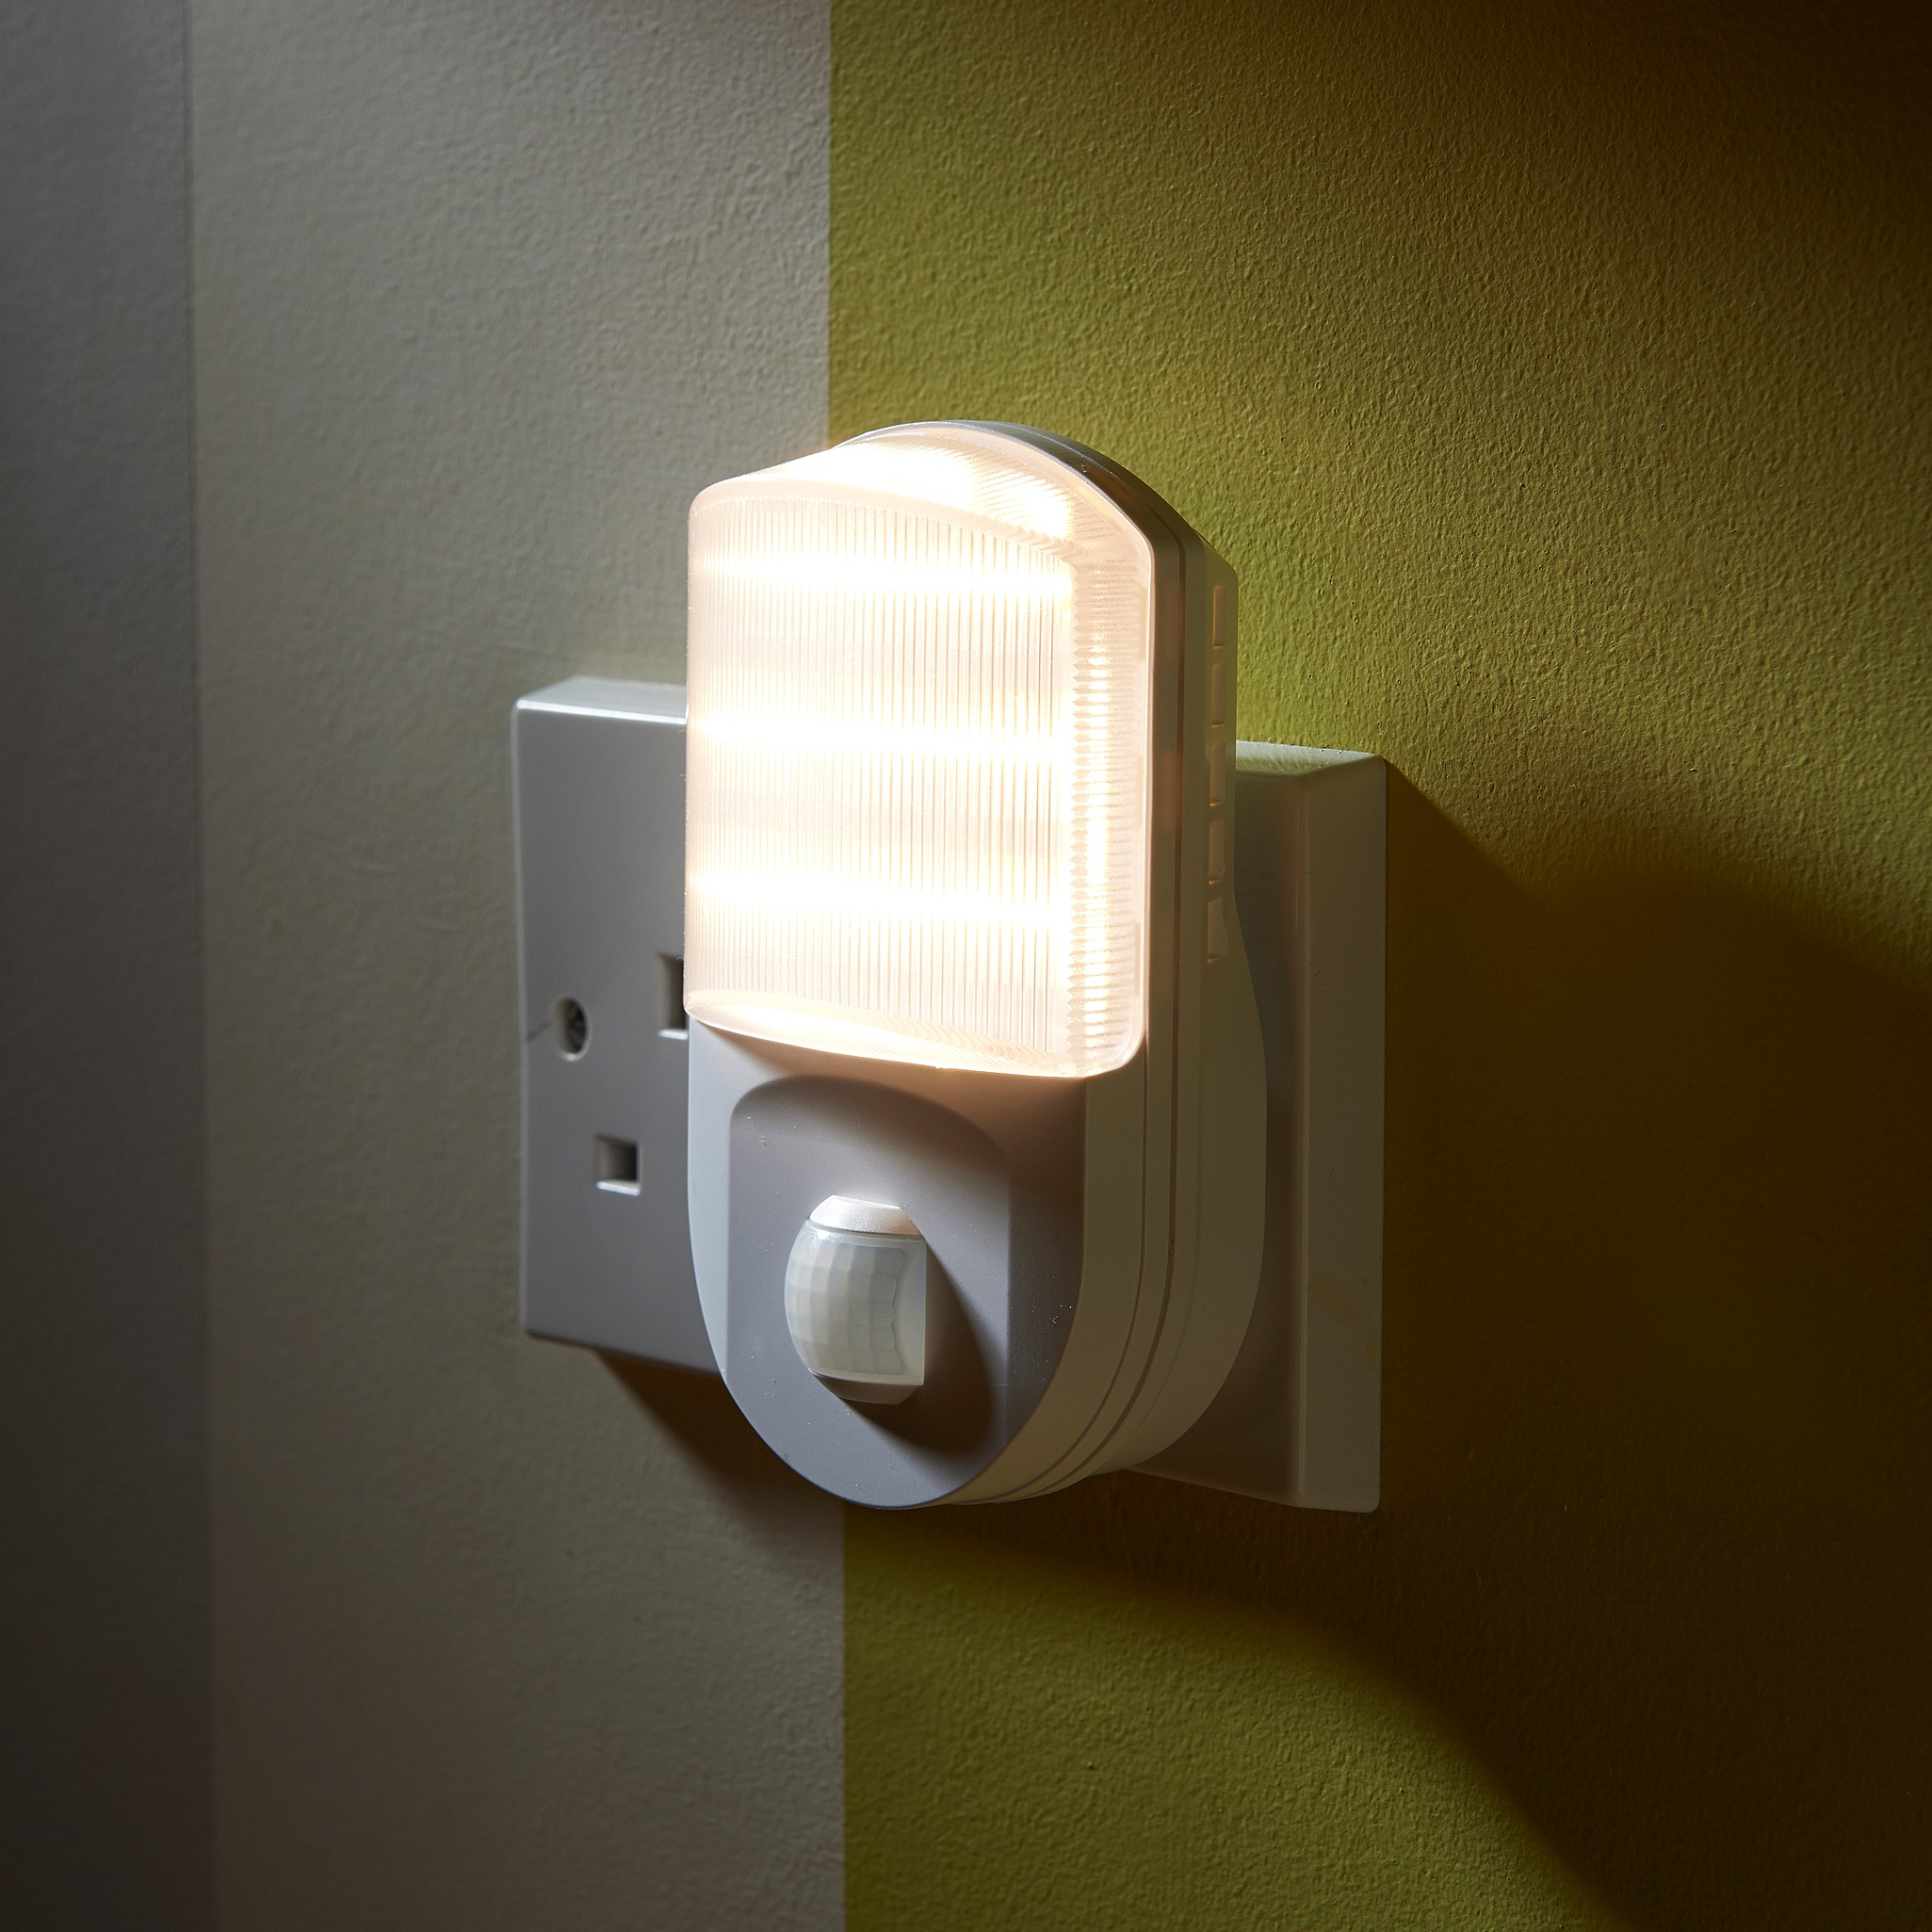 Auraglow Plugin Pir Motion Sensor Hallway Plug Socket Led